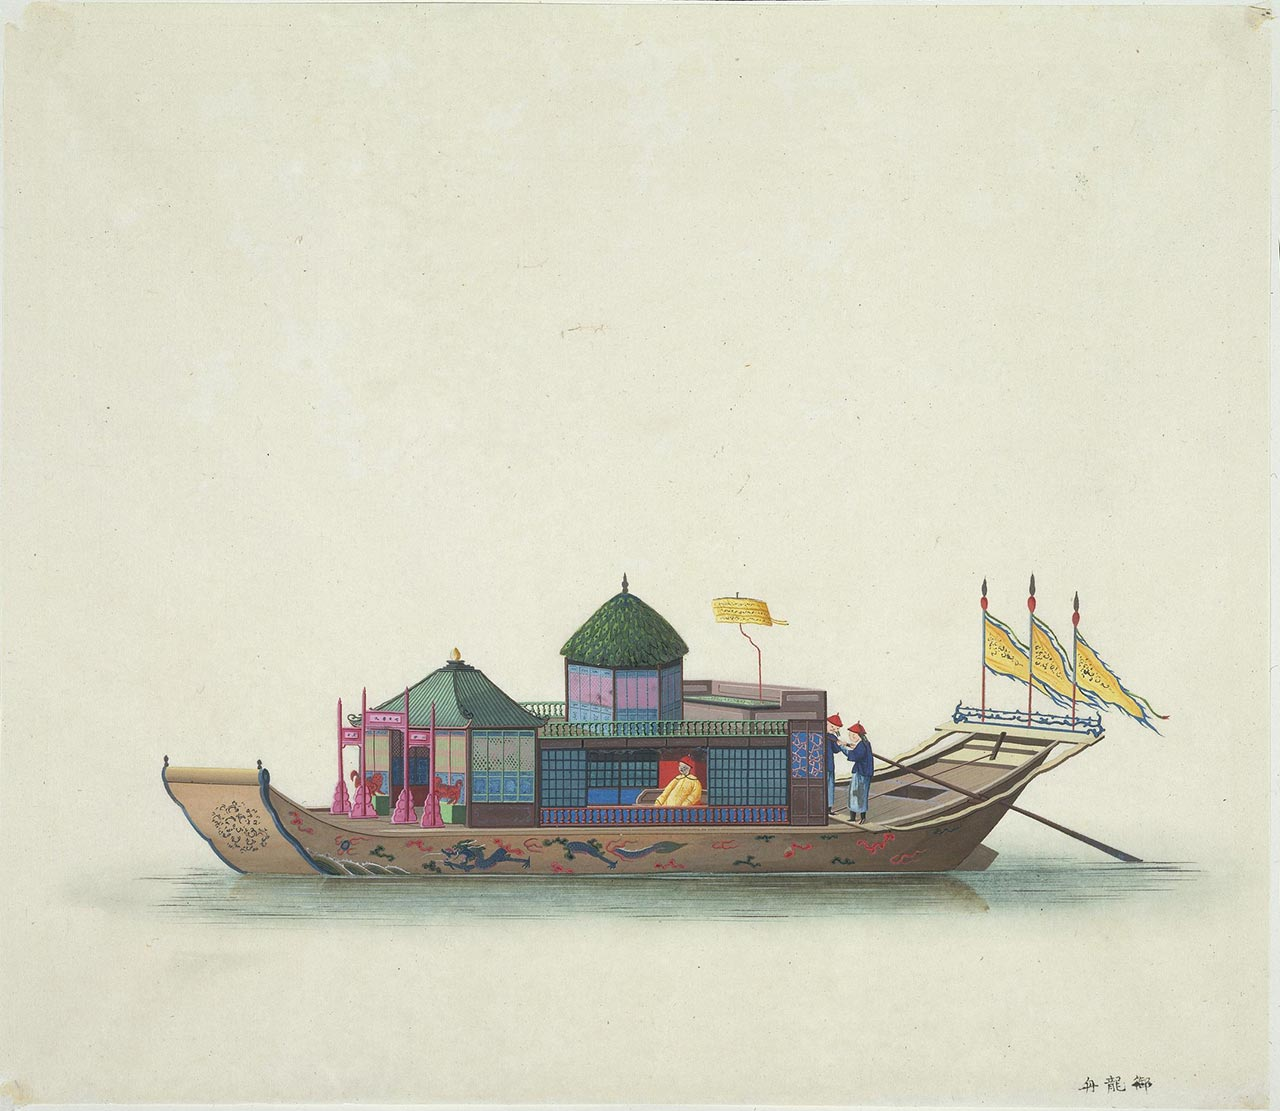 A Chinese emperor's boat. In the early 19th century the Chinese emperor Jiaqing never made a trip to Canton, so the painting is likely to have been a product of the artist's imagination rather than drawn from life.